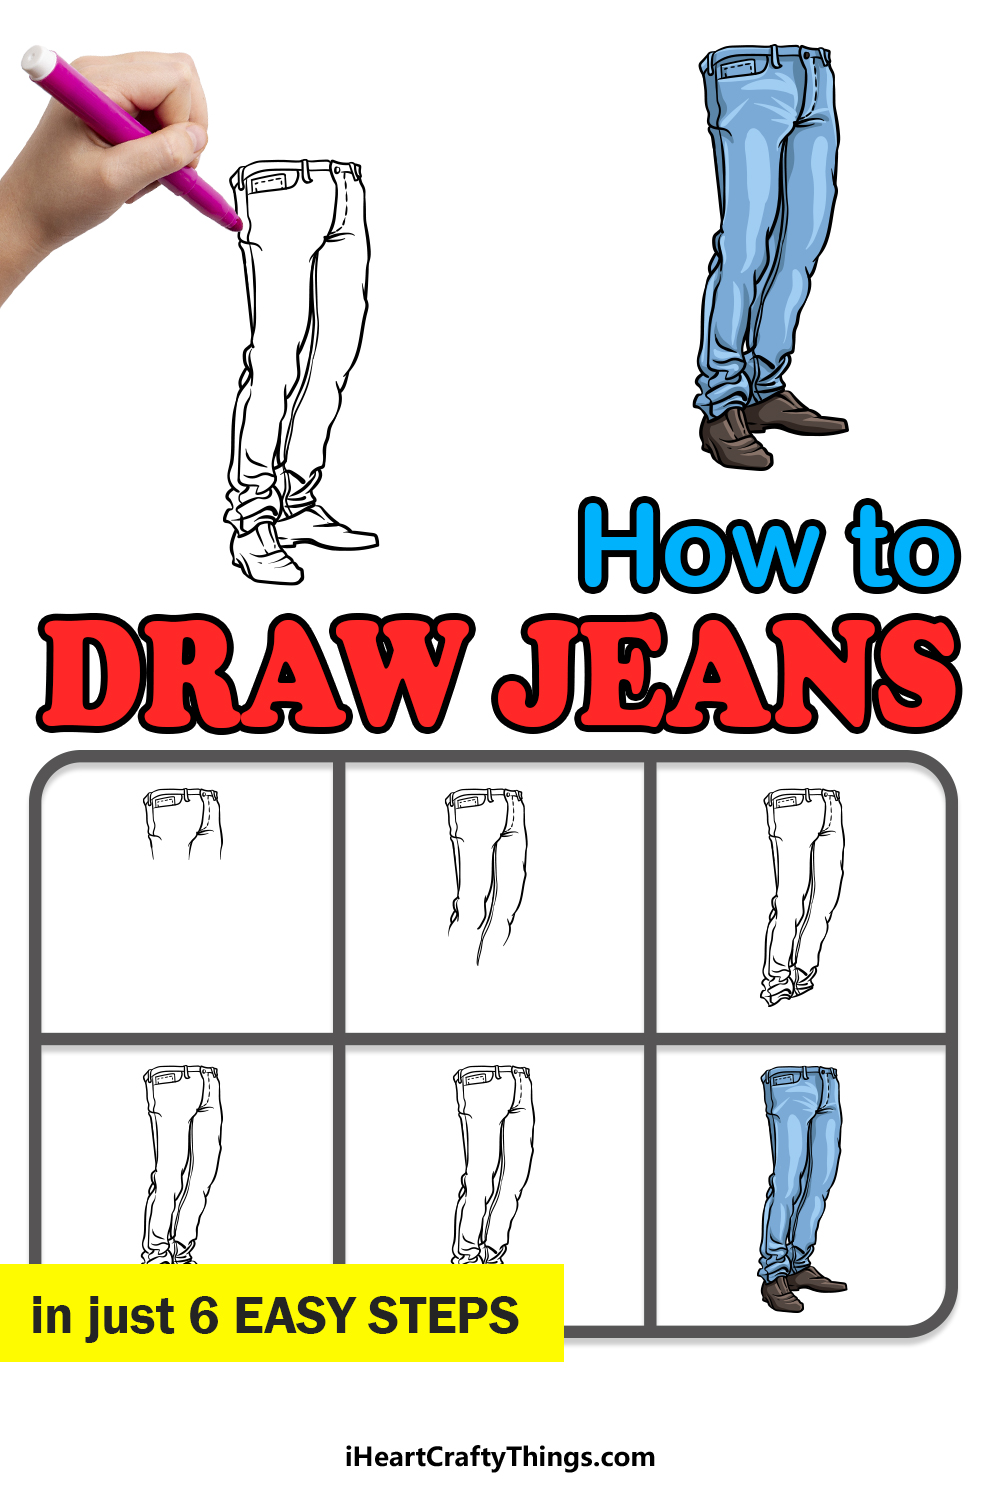 how to draw jeans in 6 easy steps